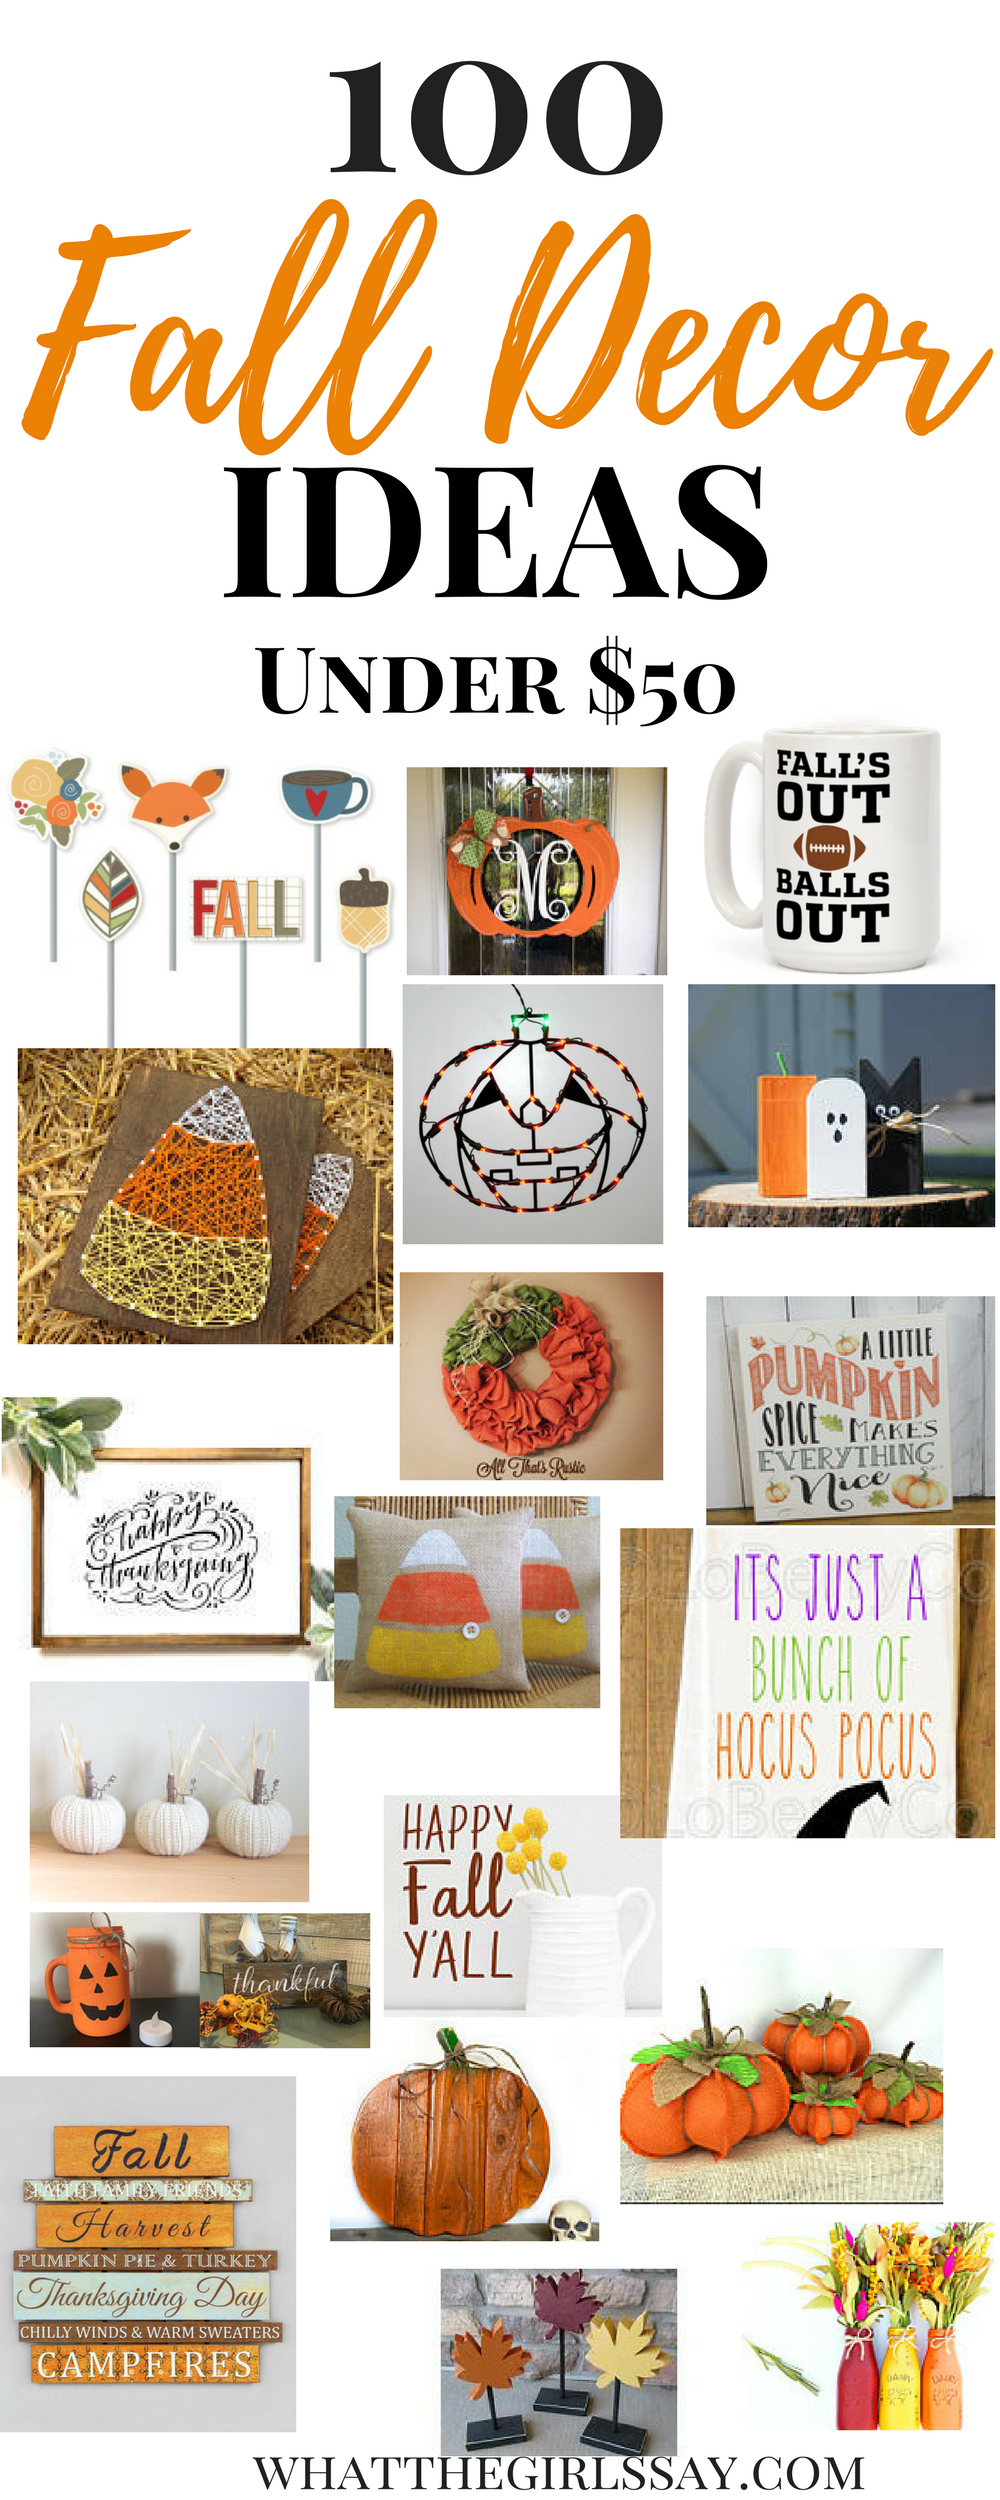 Fall Decor Ideas - Ready to decorate your home for Fall? Here are 100 of our Favorite Fall Decoration Ideas for the Home! From Pumpkin decorations to beautiful Fall Signs, these Autumn Decorations are sure to be a huge hit!